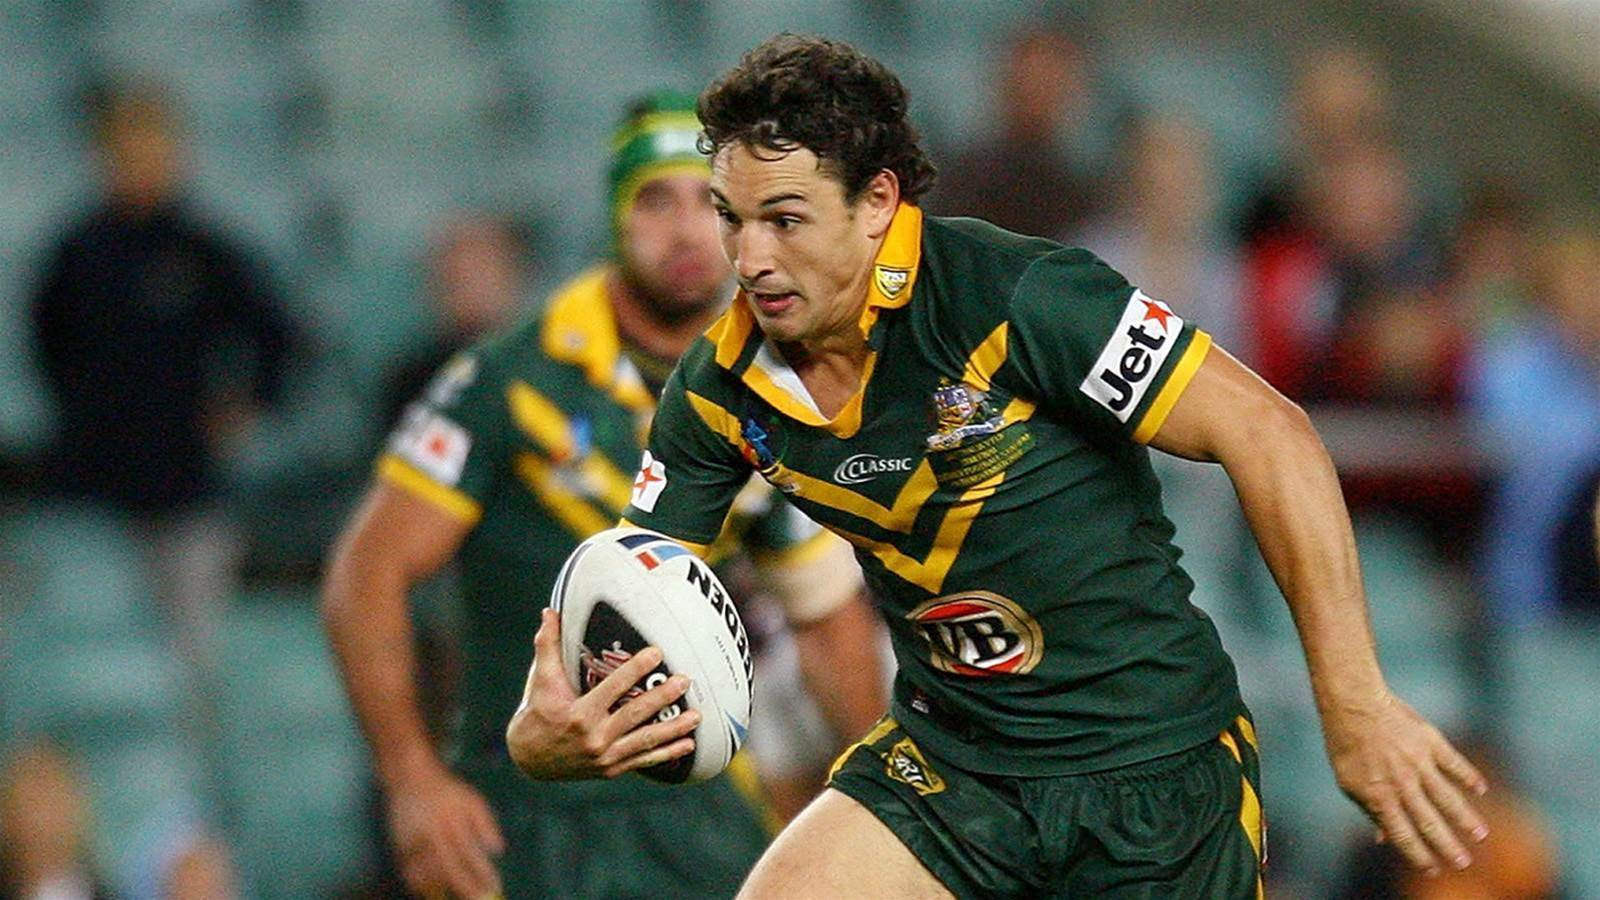 Billy Slater: 'League gave me heroes as a kid and the chance to be one myself...'